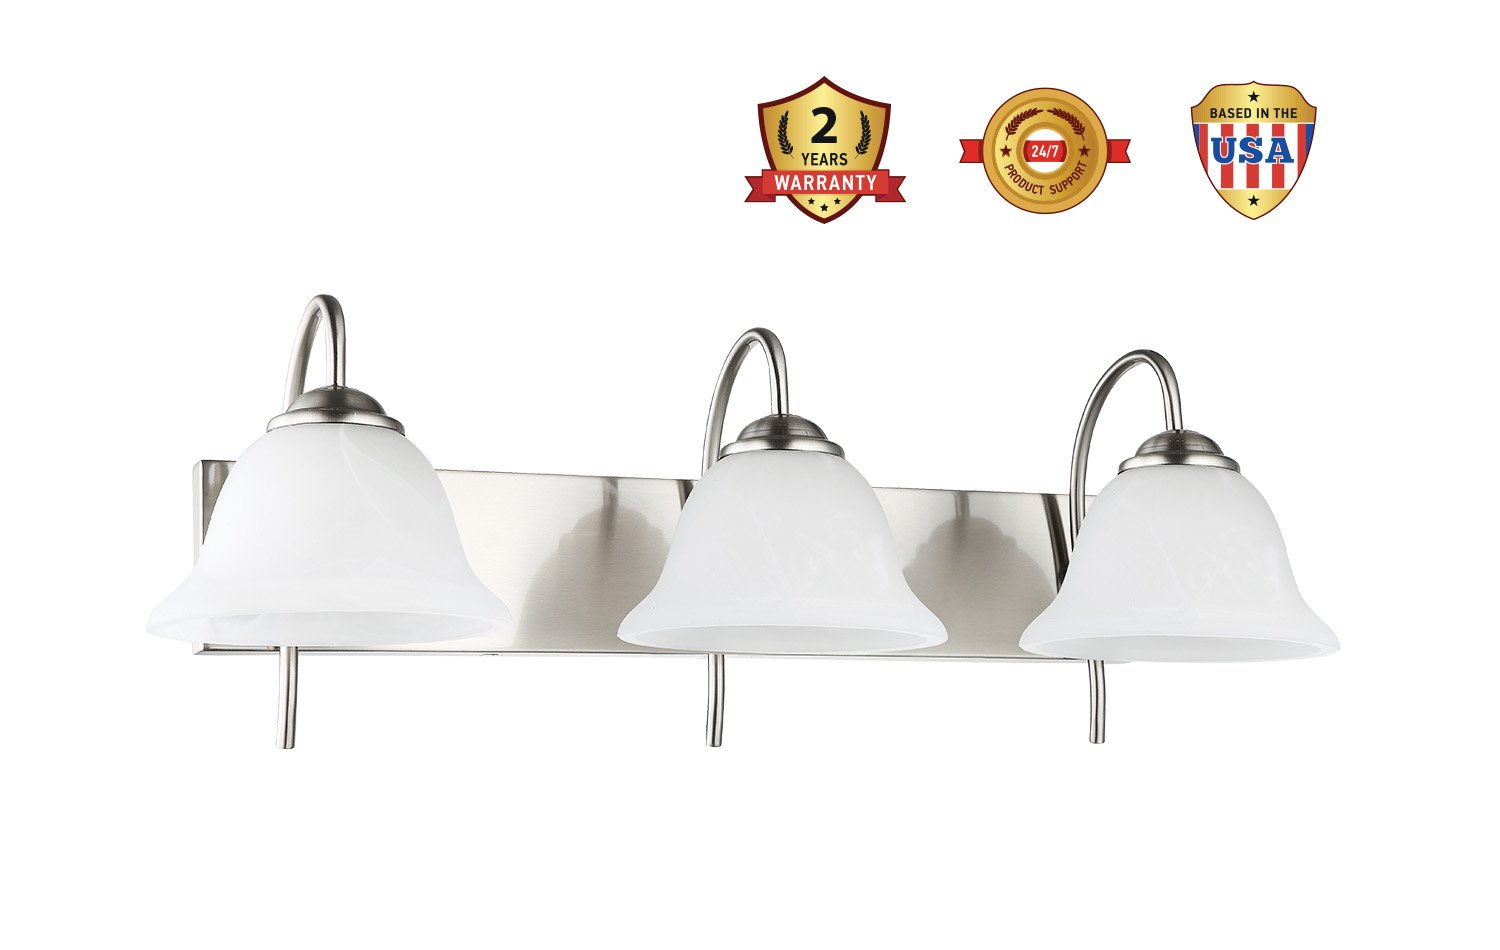 3-Light Bathroom VANITY and Kitchen Wall Sconce Fixture, Satin Nickel Finish with Alabaster Glass Bell Shades, E26 Medium Base For Three Bulbs, UL Listed by OSTWIN (Image #8)